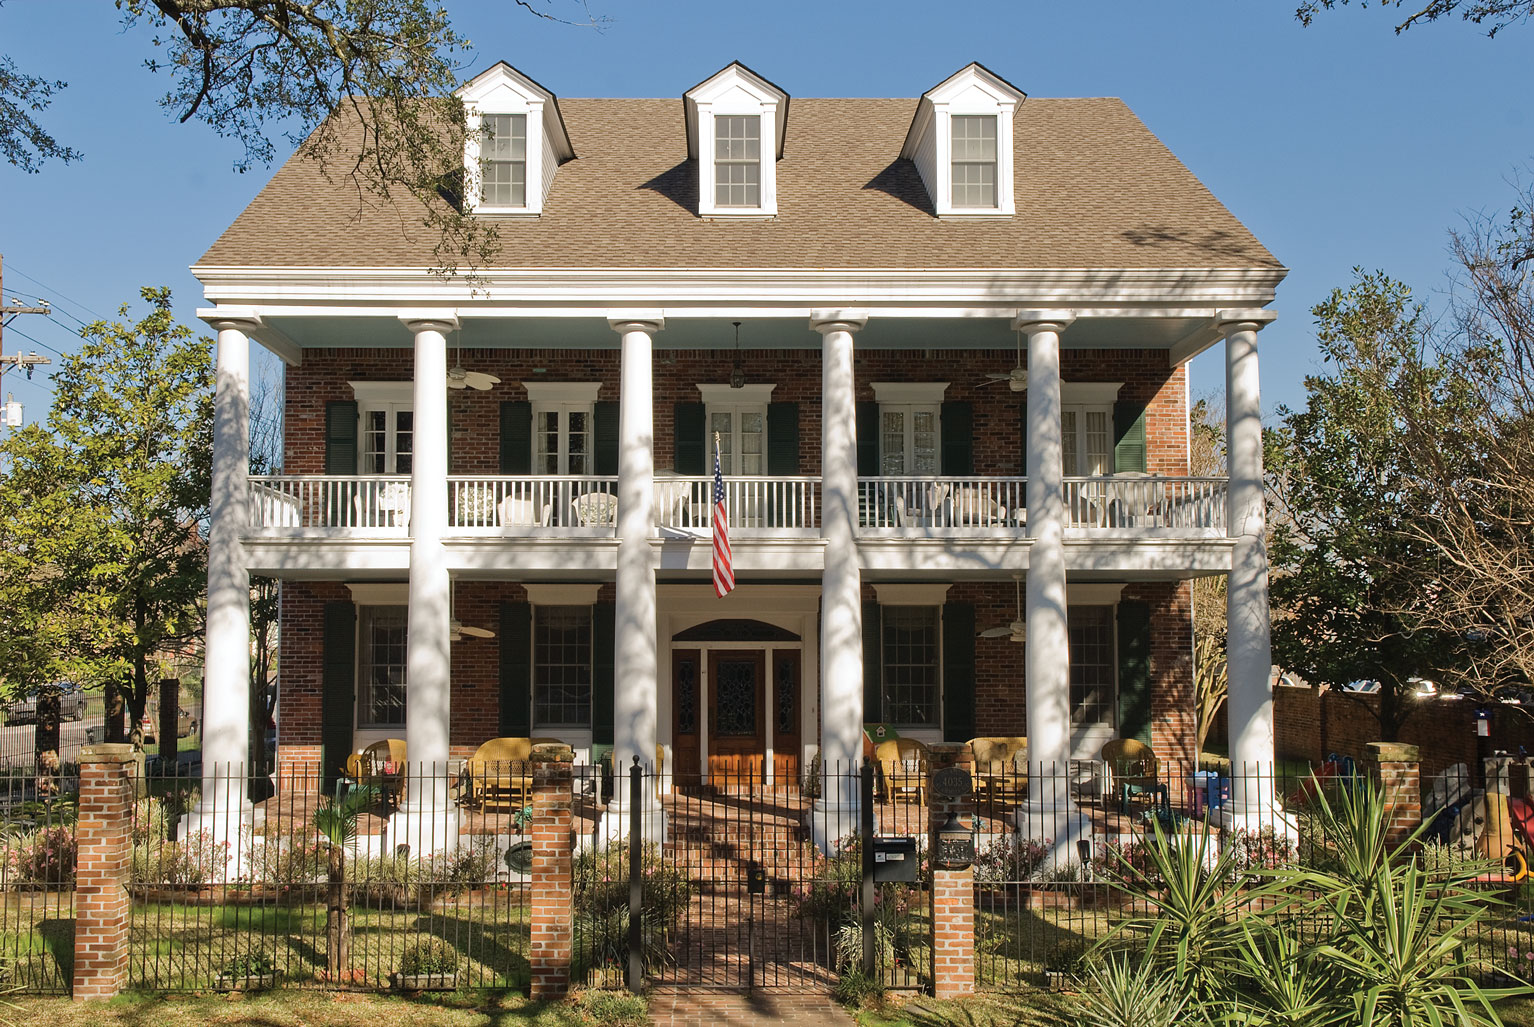 Southern colonial house style the image Colonial home builders